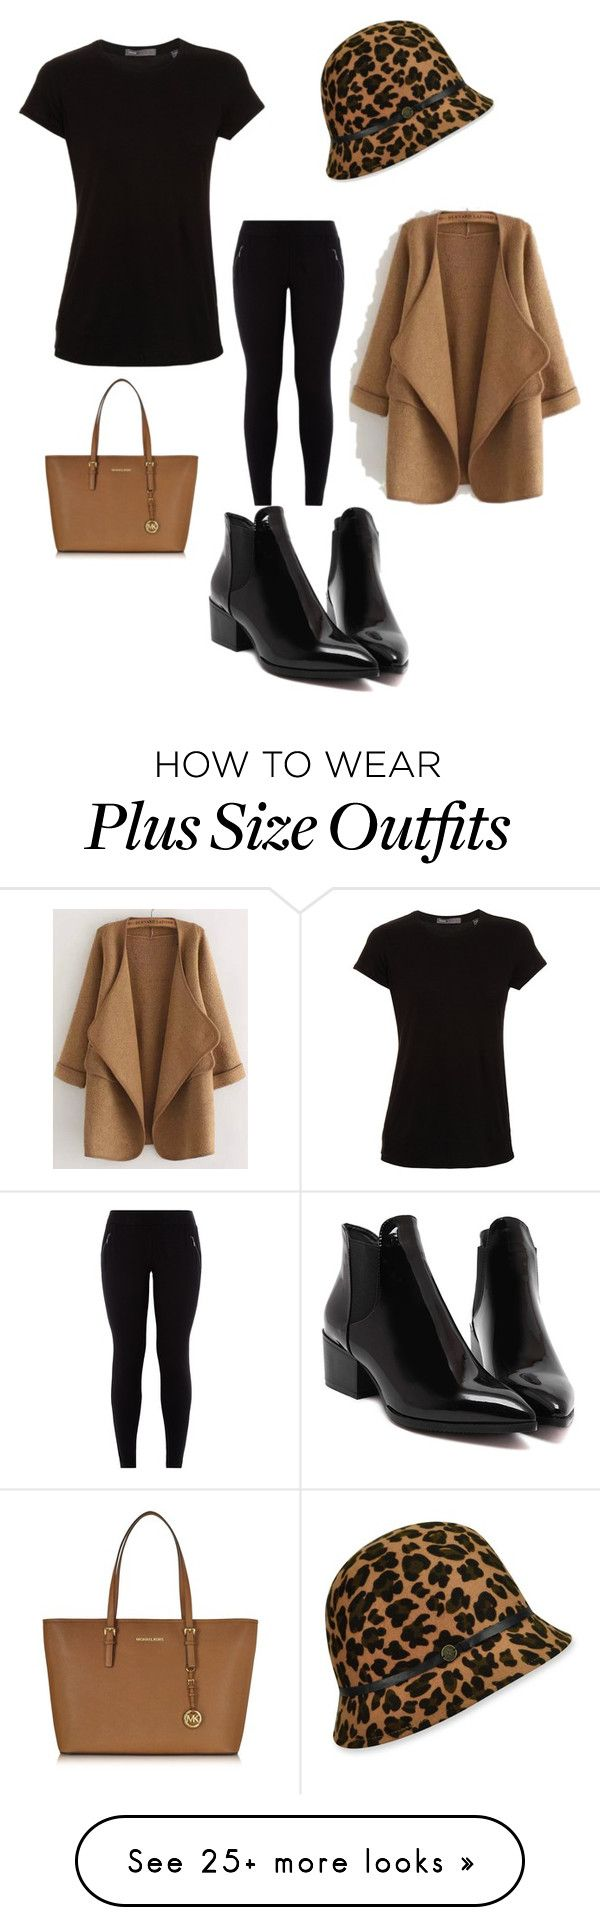 """Untitled #330"" by stylemirror on Polyvore featuring Karen Kane, WithChic, Vince and Michael Kors"